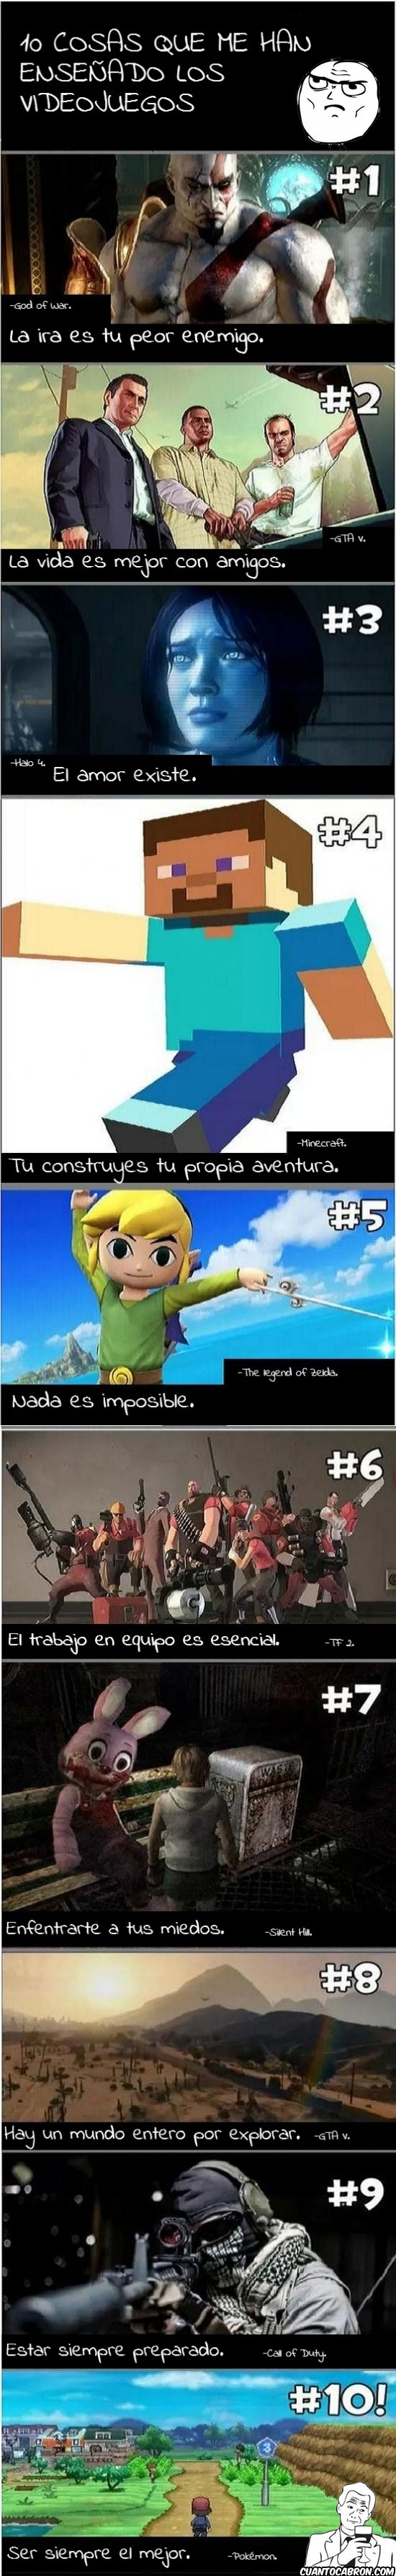 COD,God of war,GTA V,halo 4,juegos,la vida misma,minecraft,pokémon,silent hill,TF 2,the legend of zelda,true story